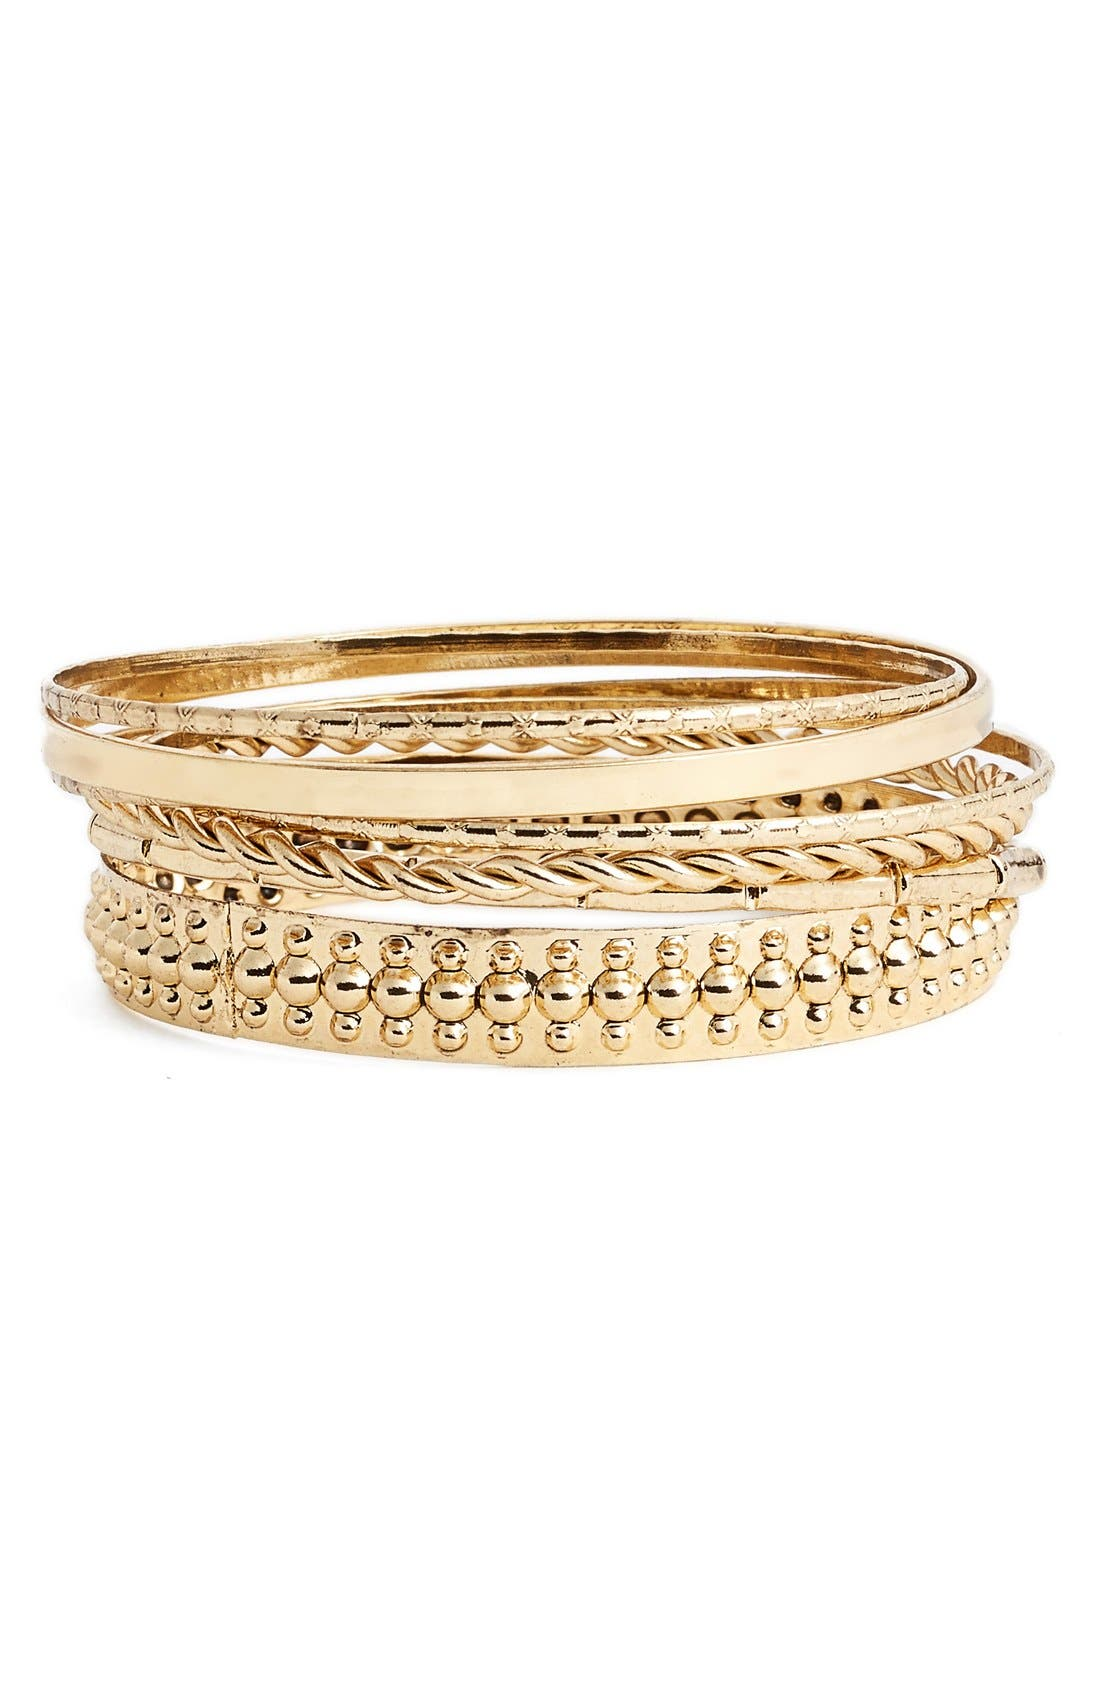 Alternate Image 1 Selected - BP. Textured Bangles (Set of 7)